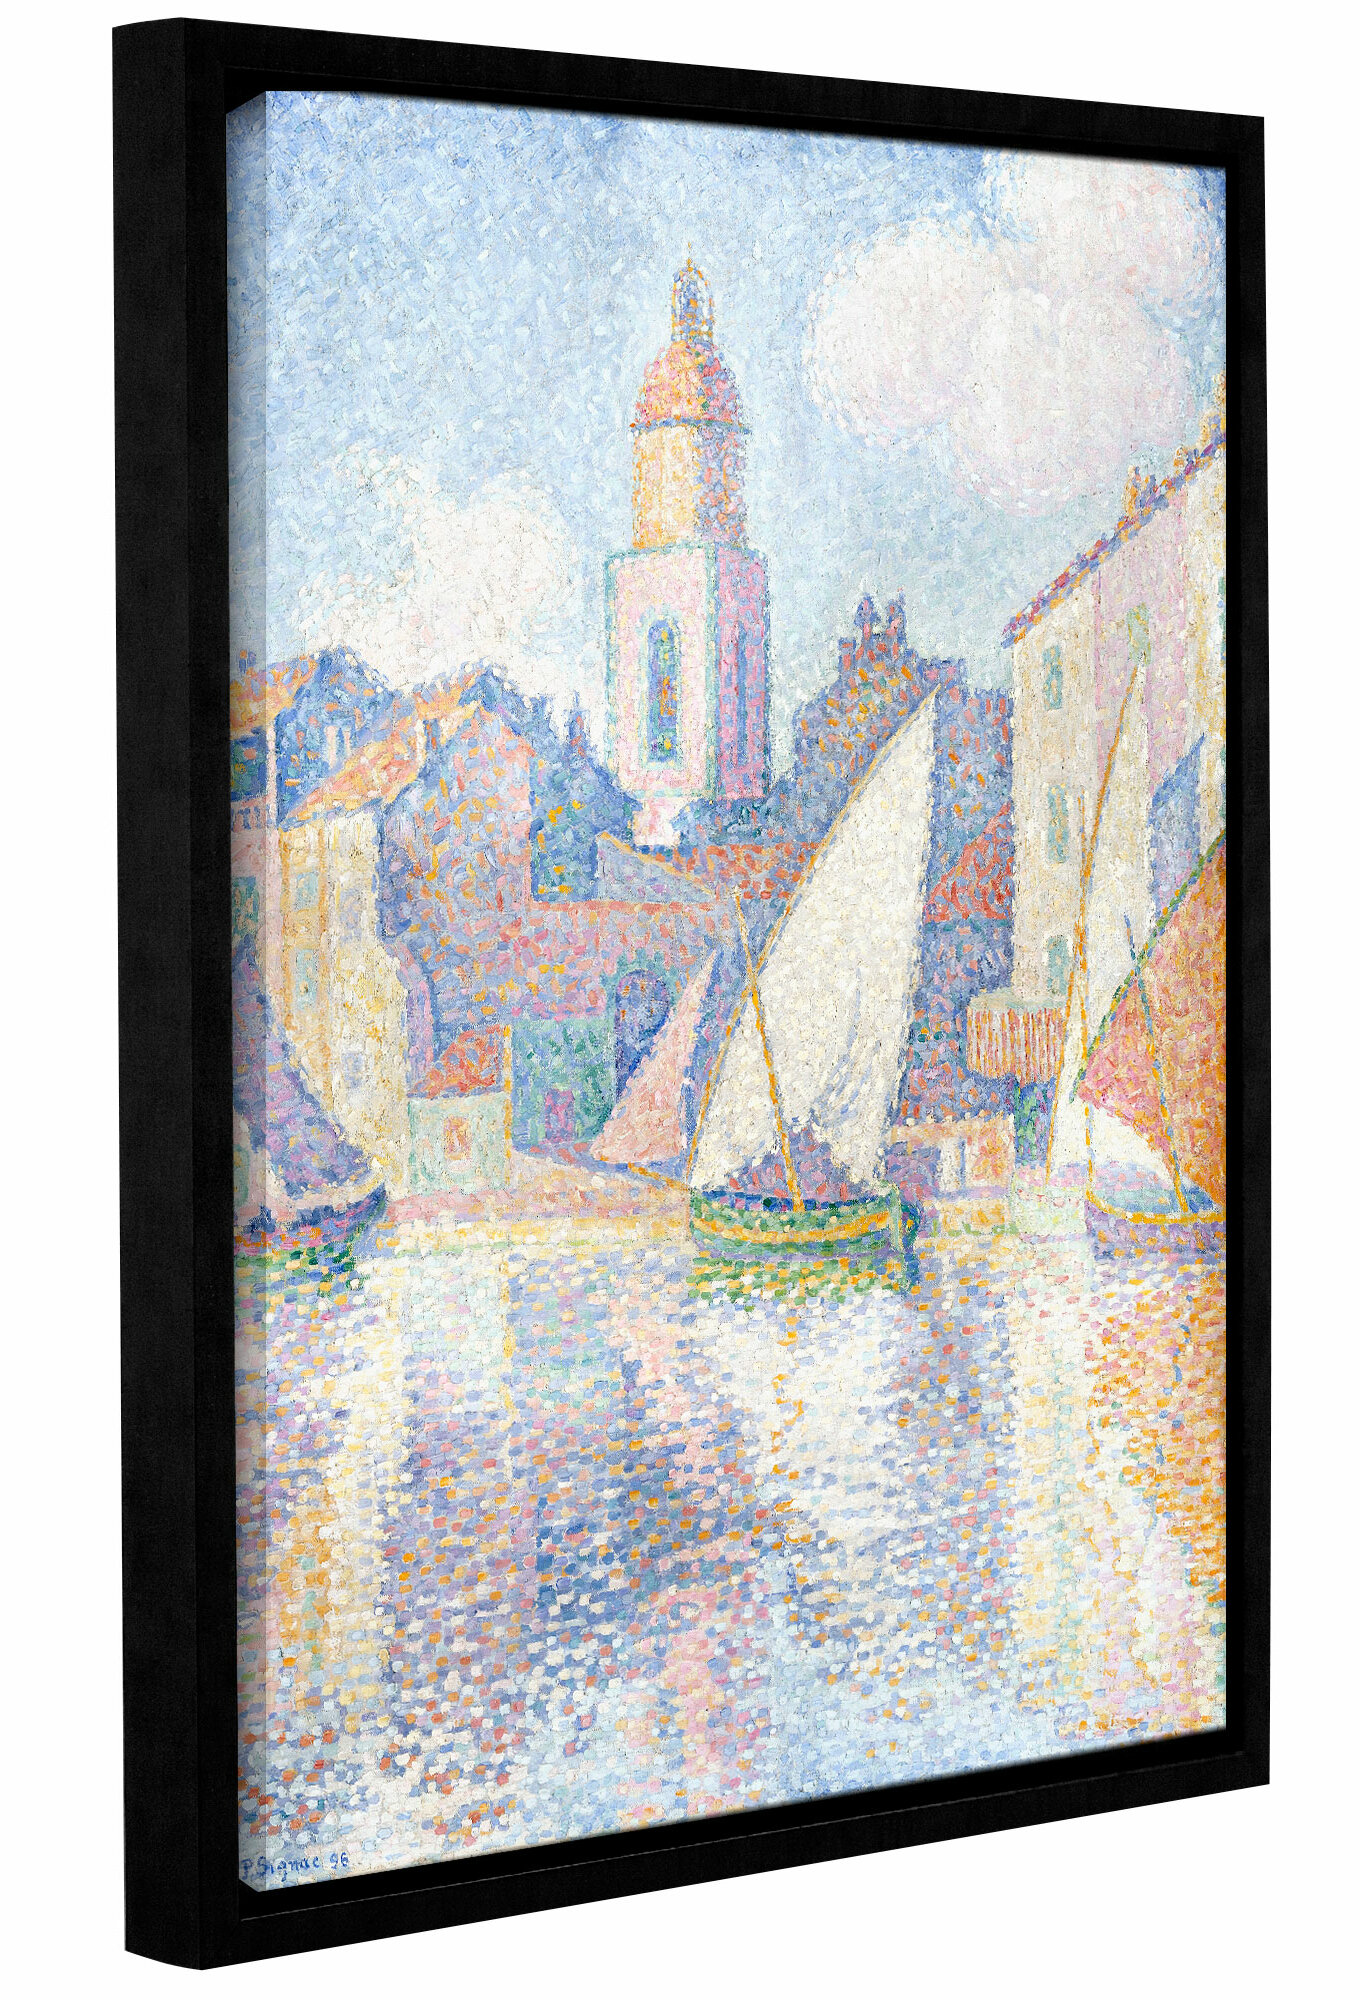 Vault W Artwork Bell Tower At Saint Tropez 1896 By Paul Signac Framed Painting Print On Wrapped Canvas Wayfair